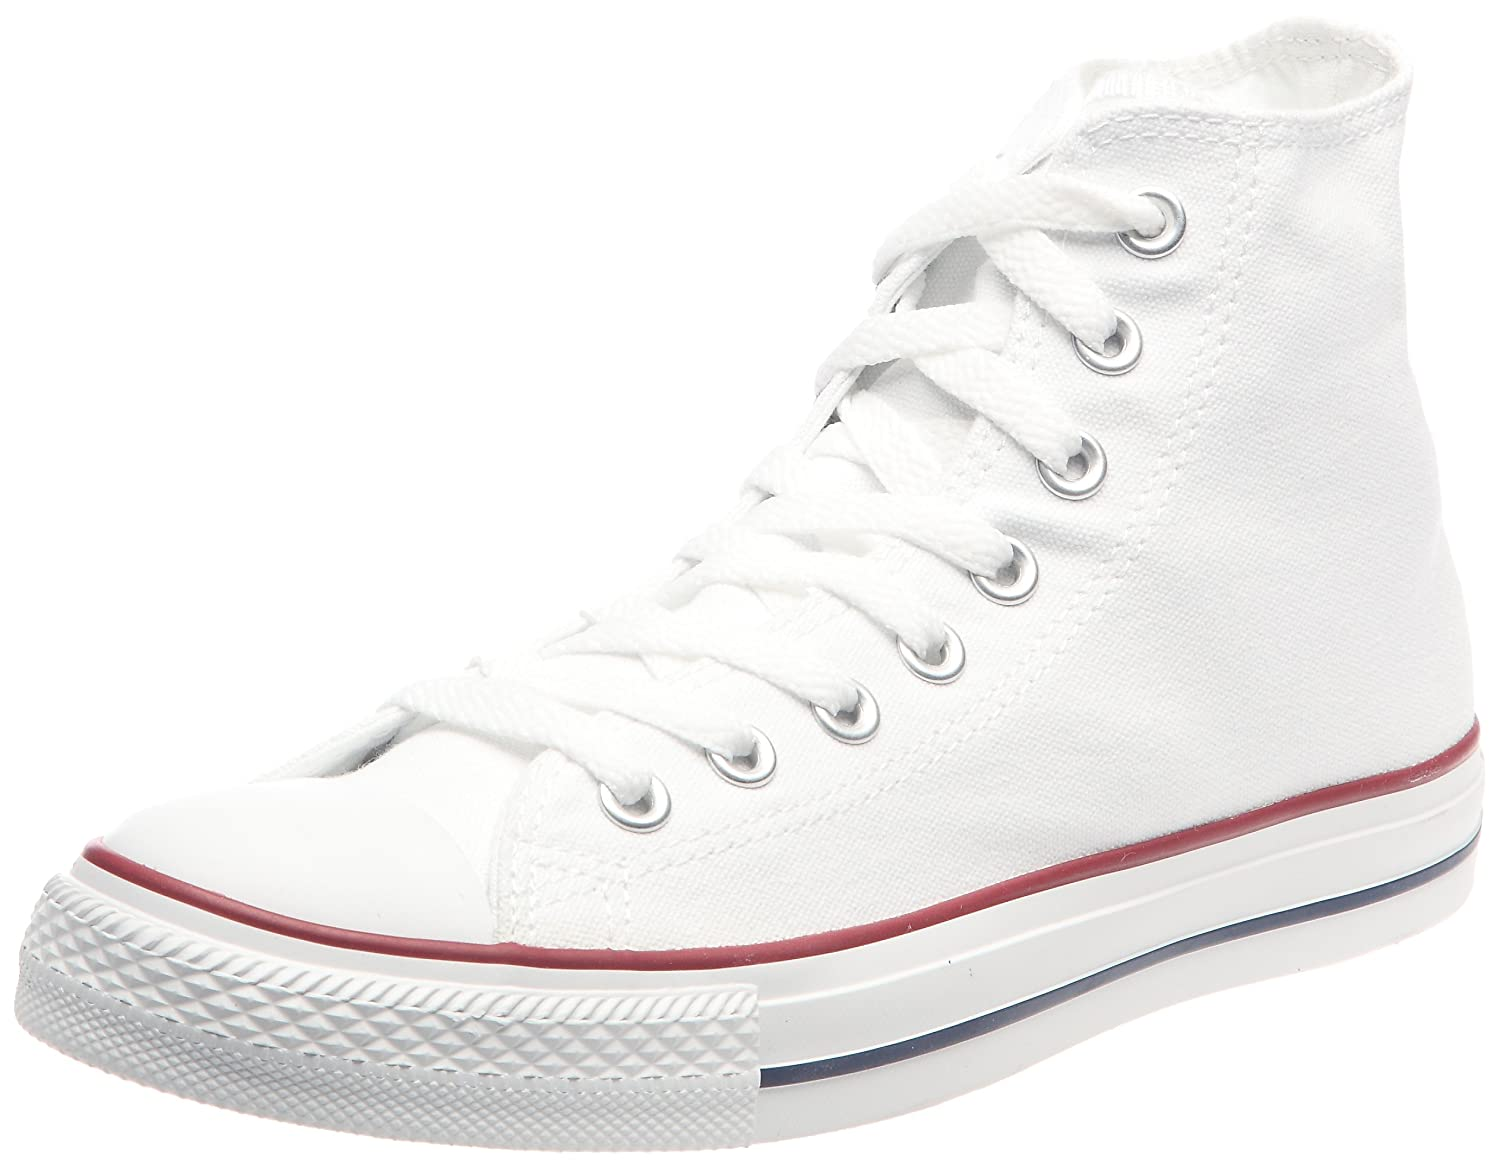 Converse Chuck Taylor Etoiles Low Top Taylor Sneakers 19994 Sneaker Converse Mode Optical White 030174d - shopssong.space